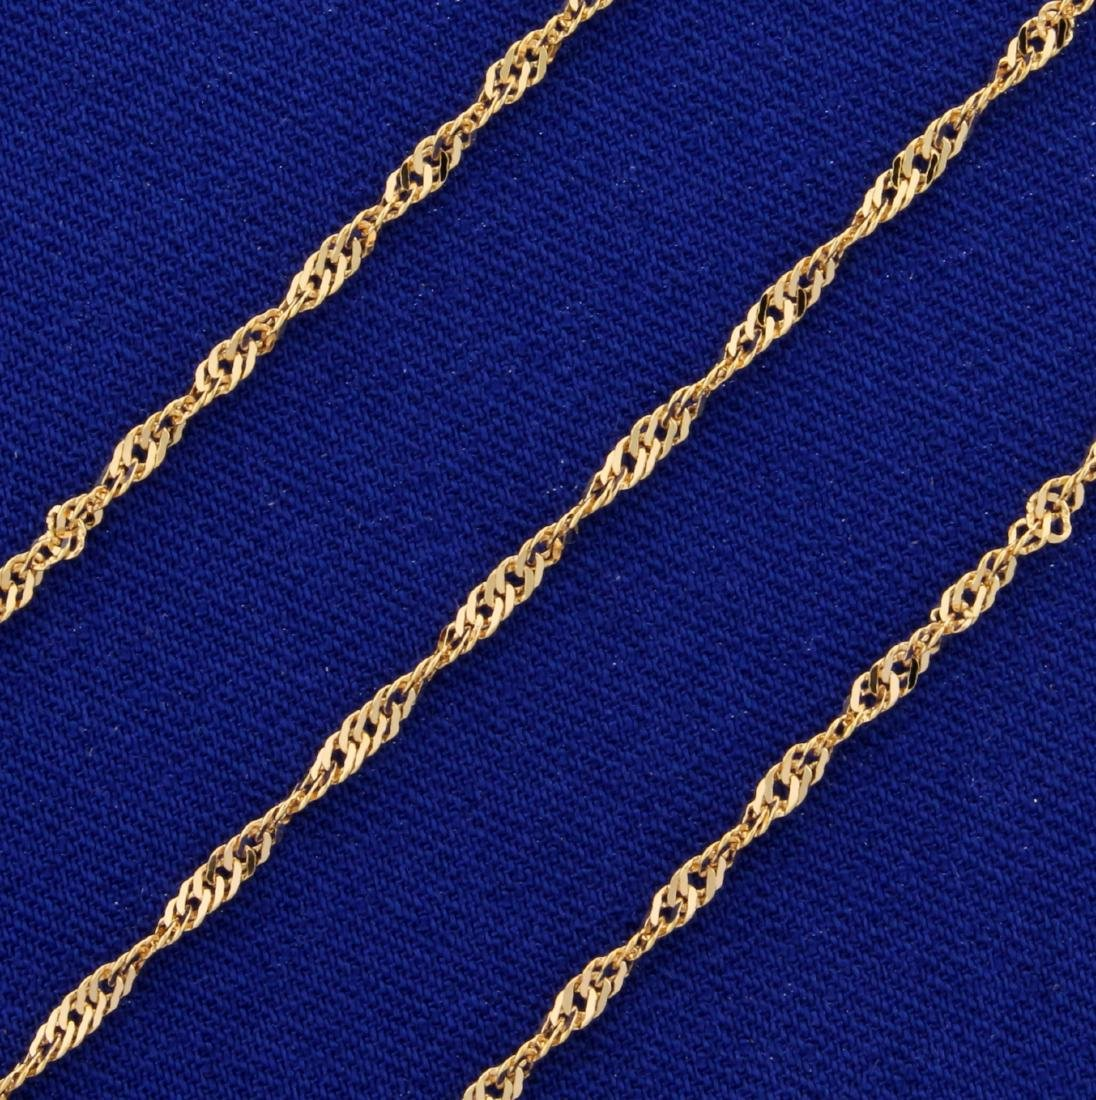 20 Inch Italian Made Rope Style Neck Chain in 14K Rose - 2